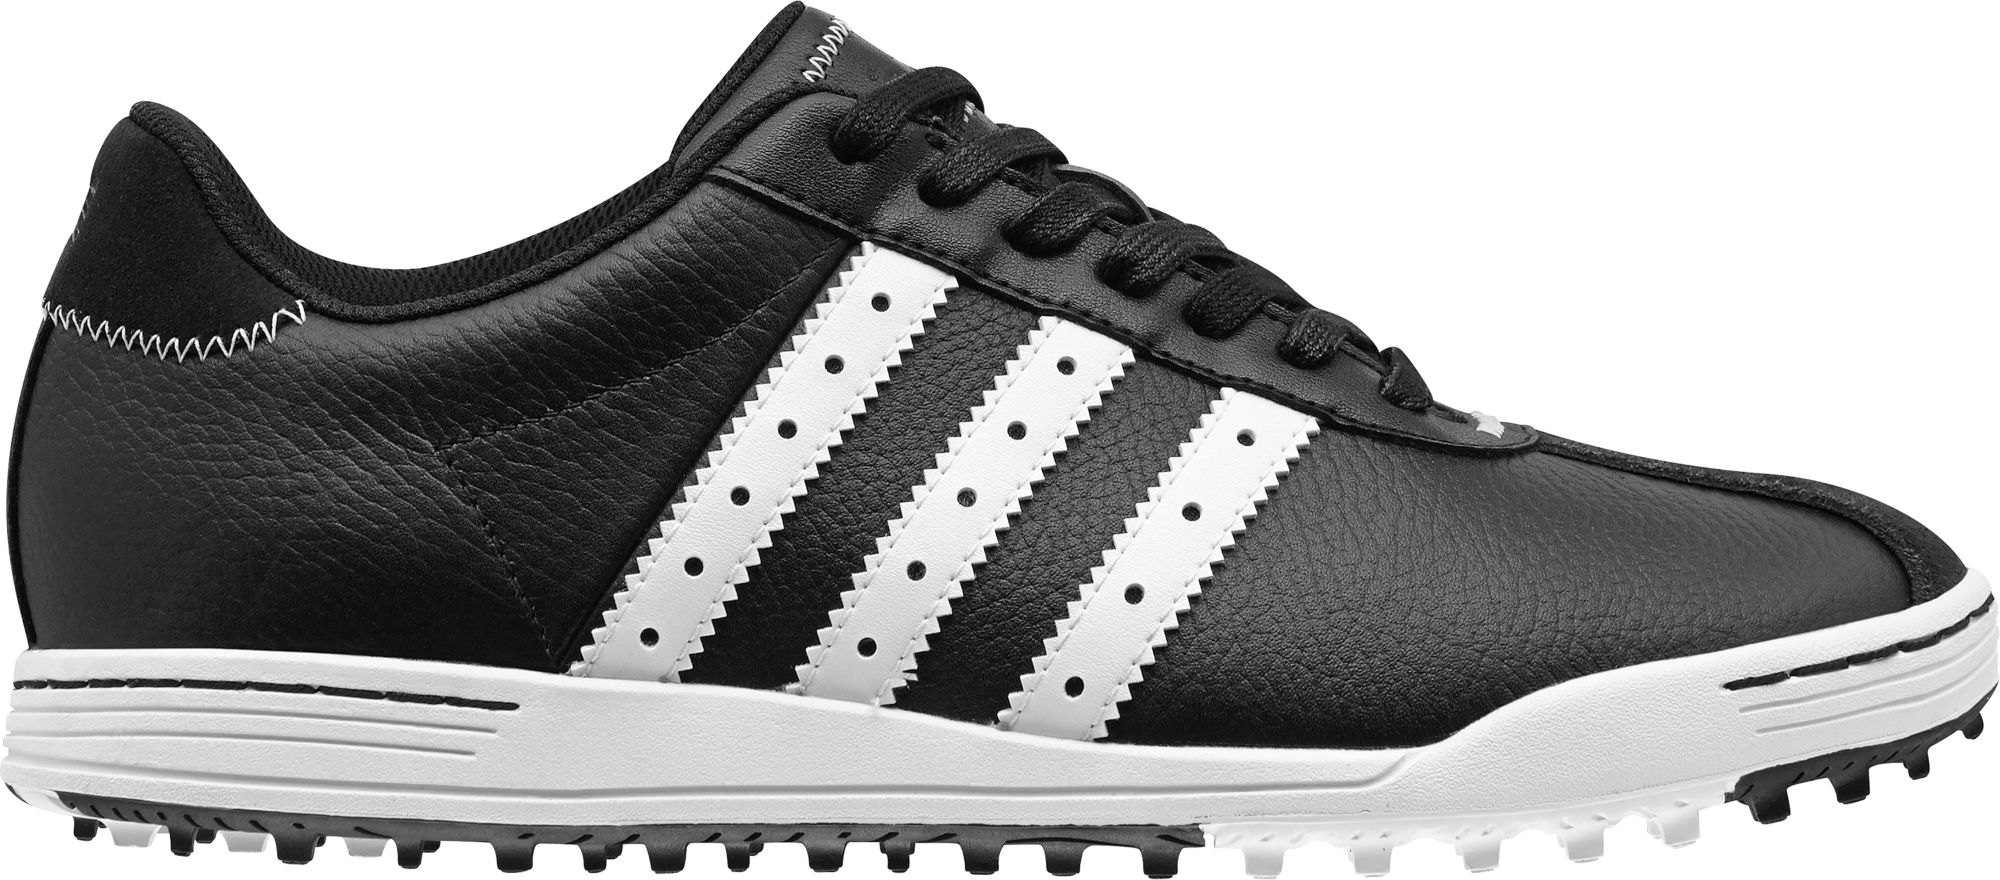 adidas golf shoes clearance